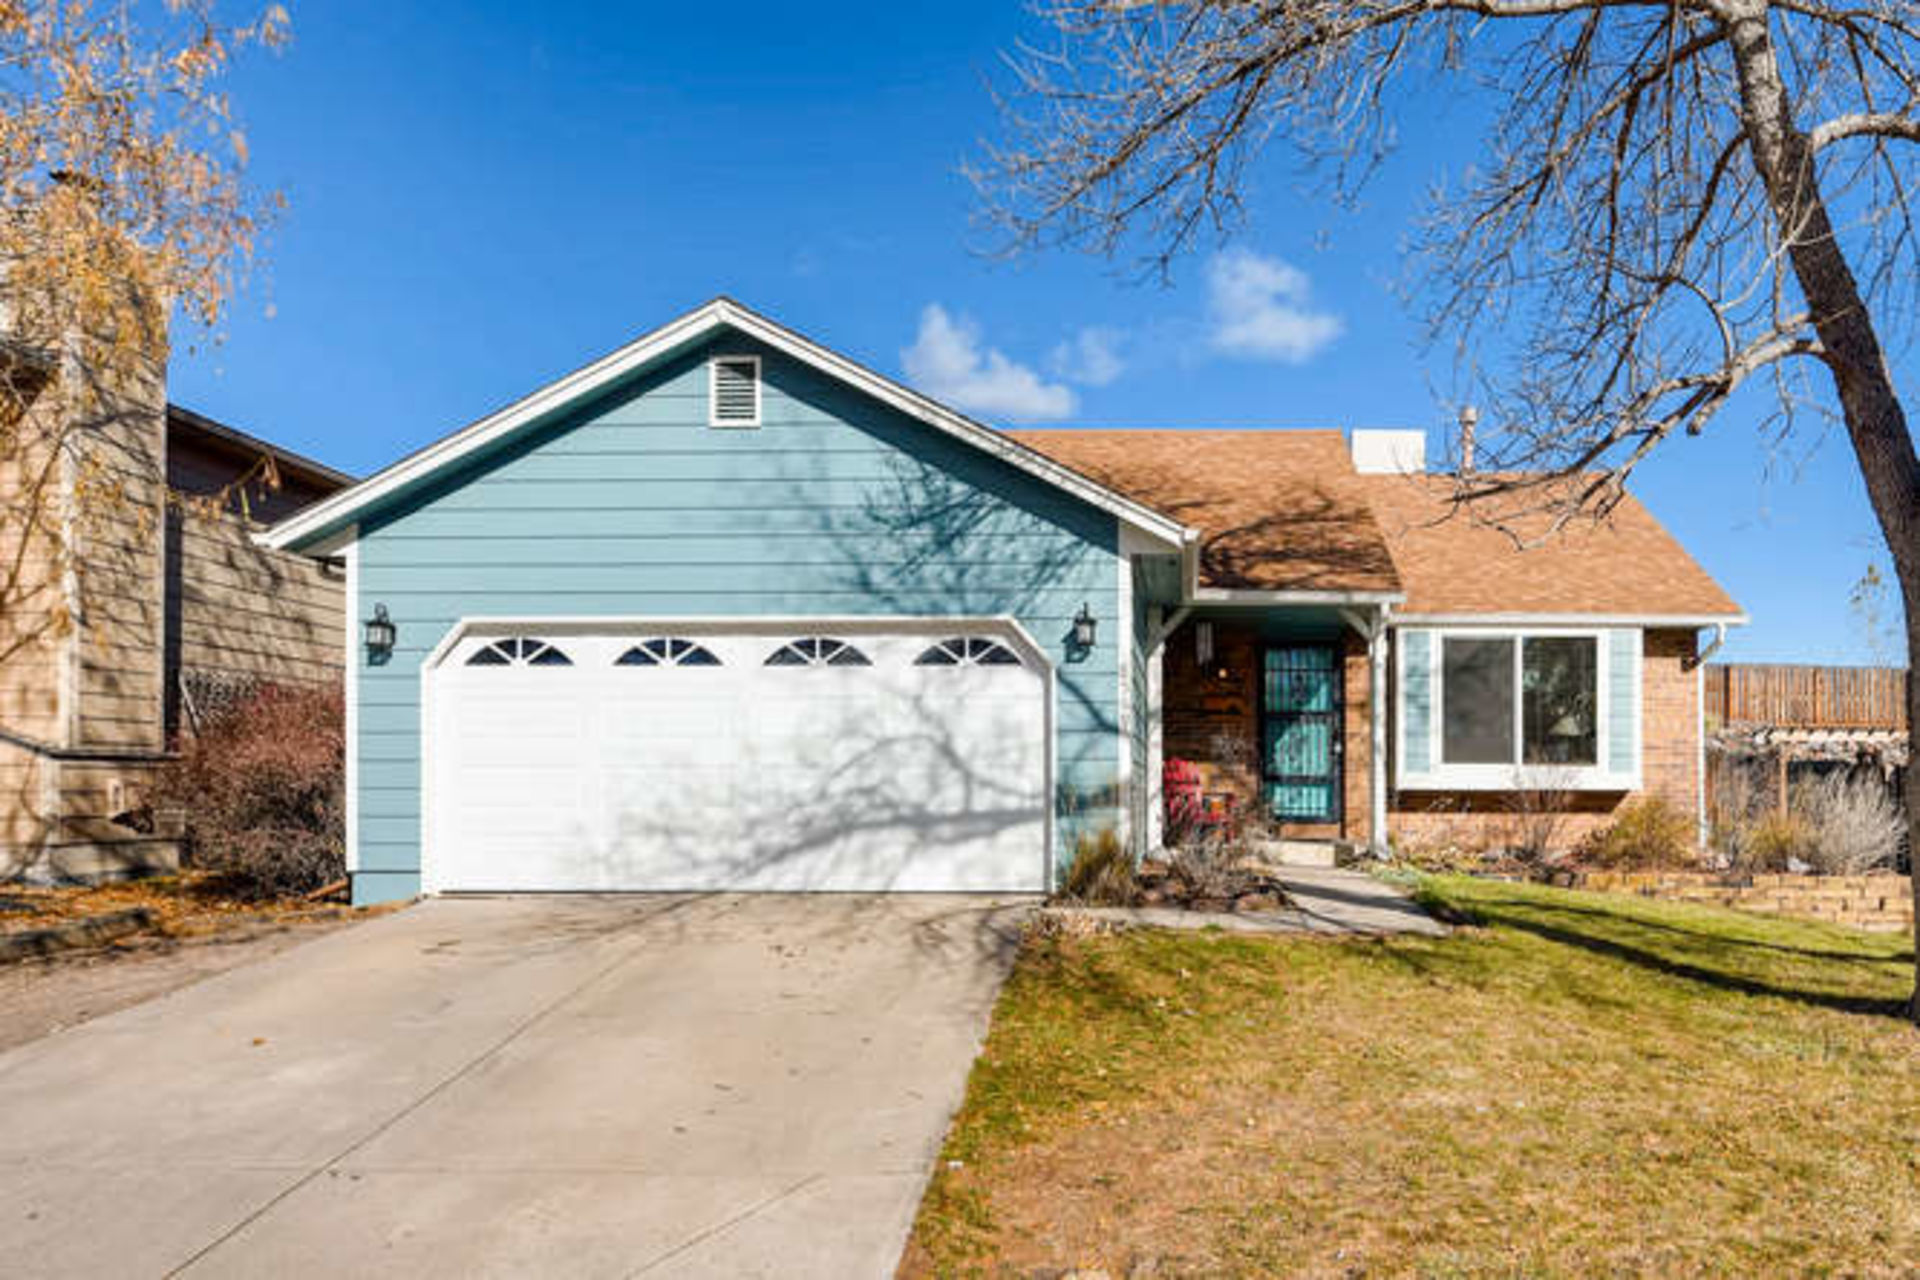 8569 S Dudley St, Littleton – New to the Market